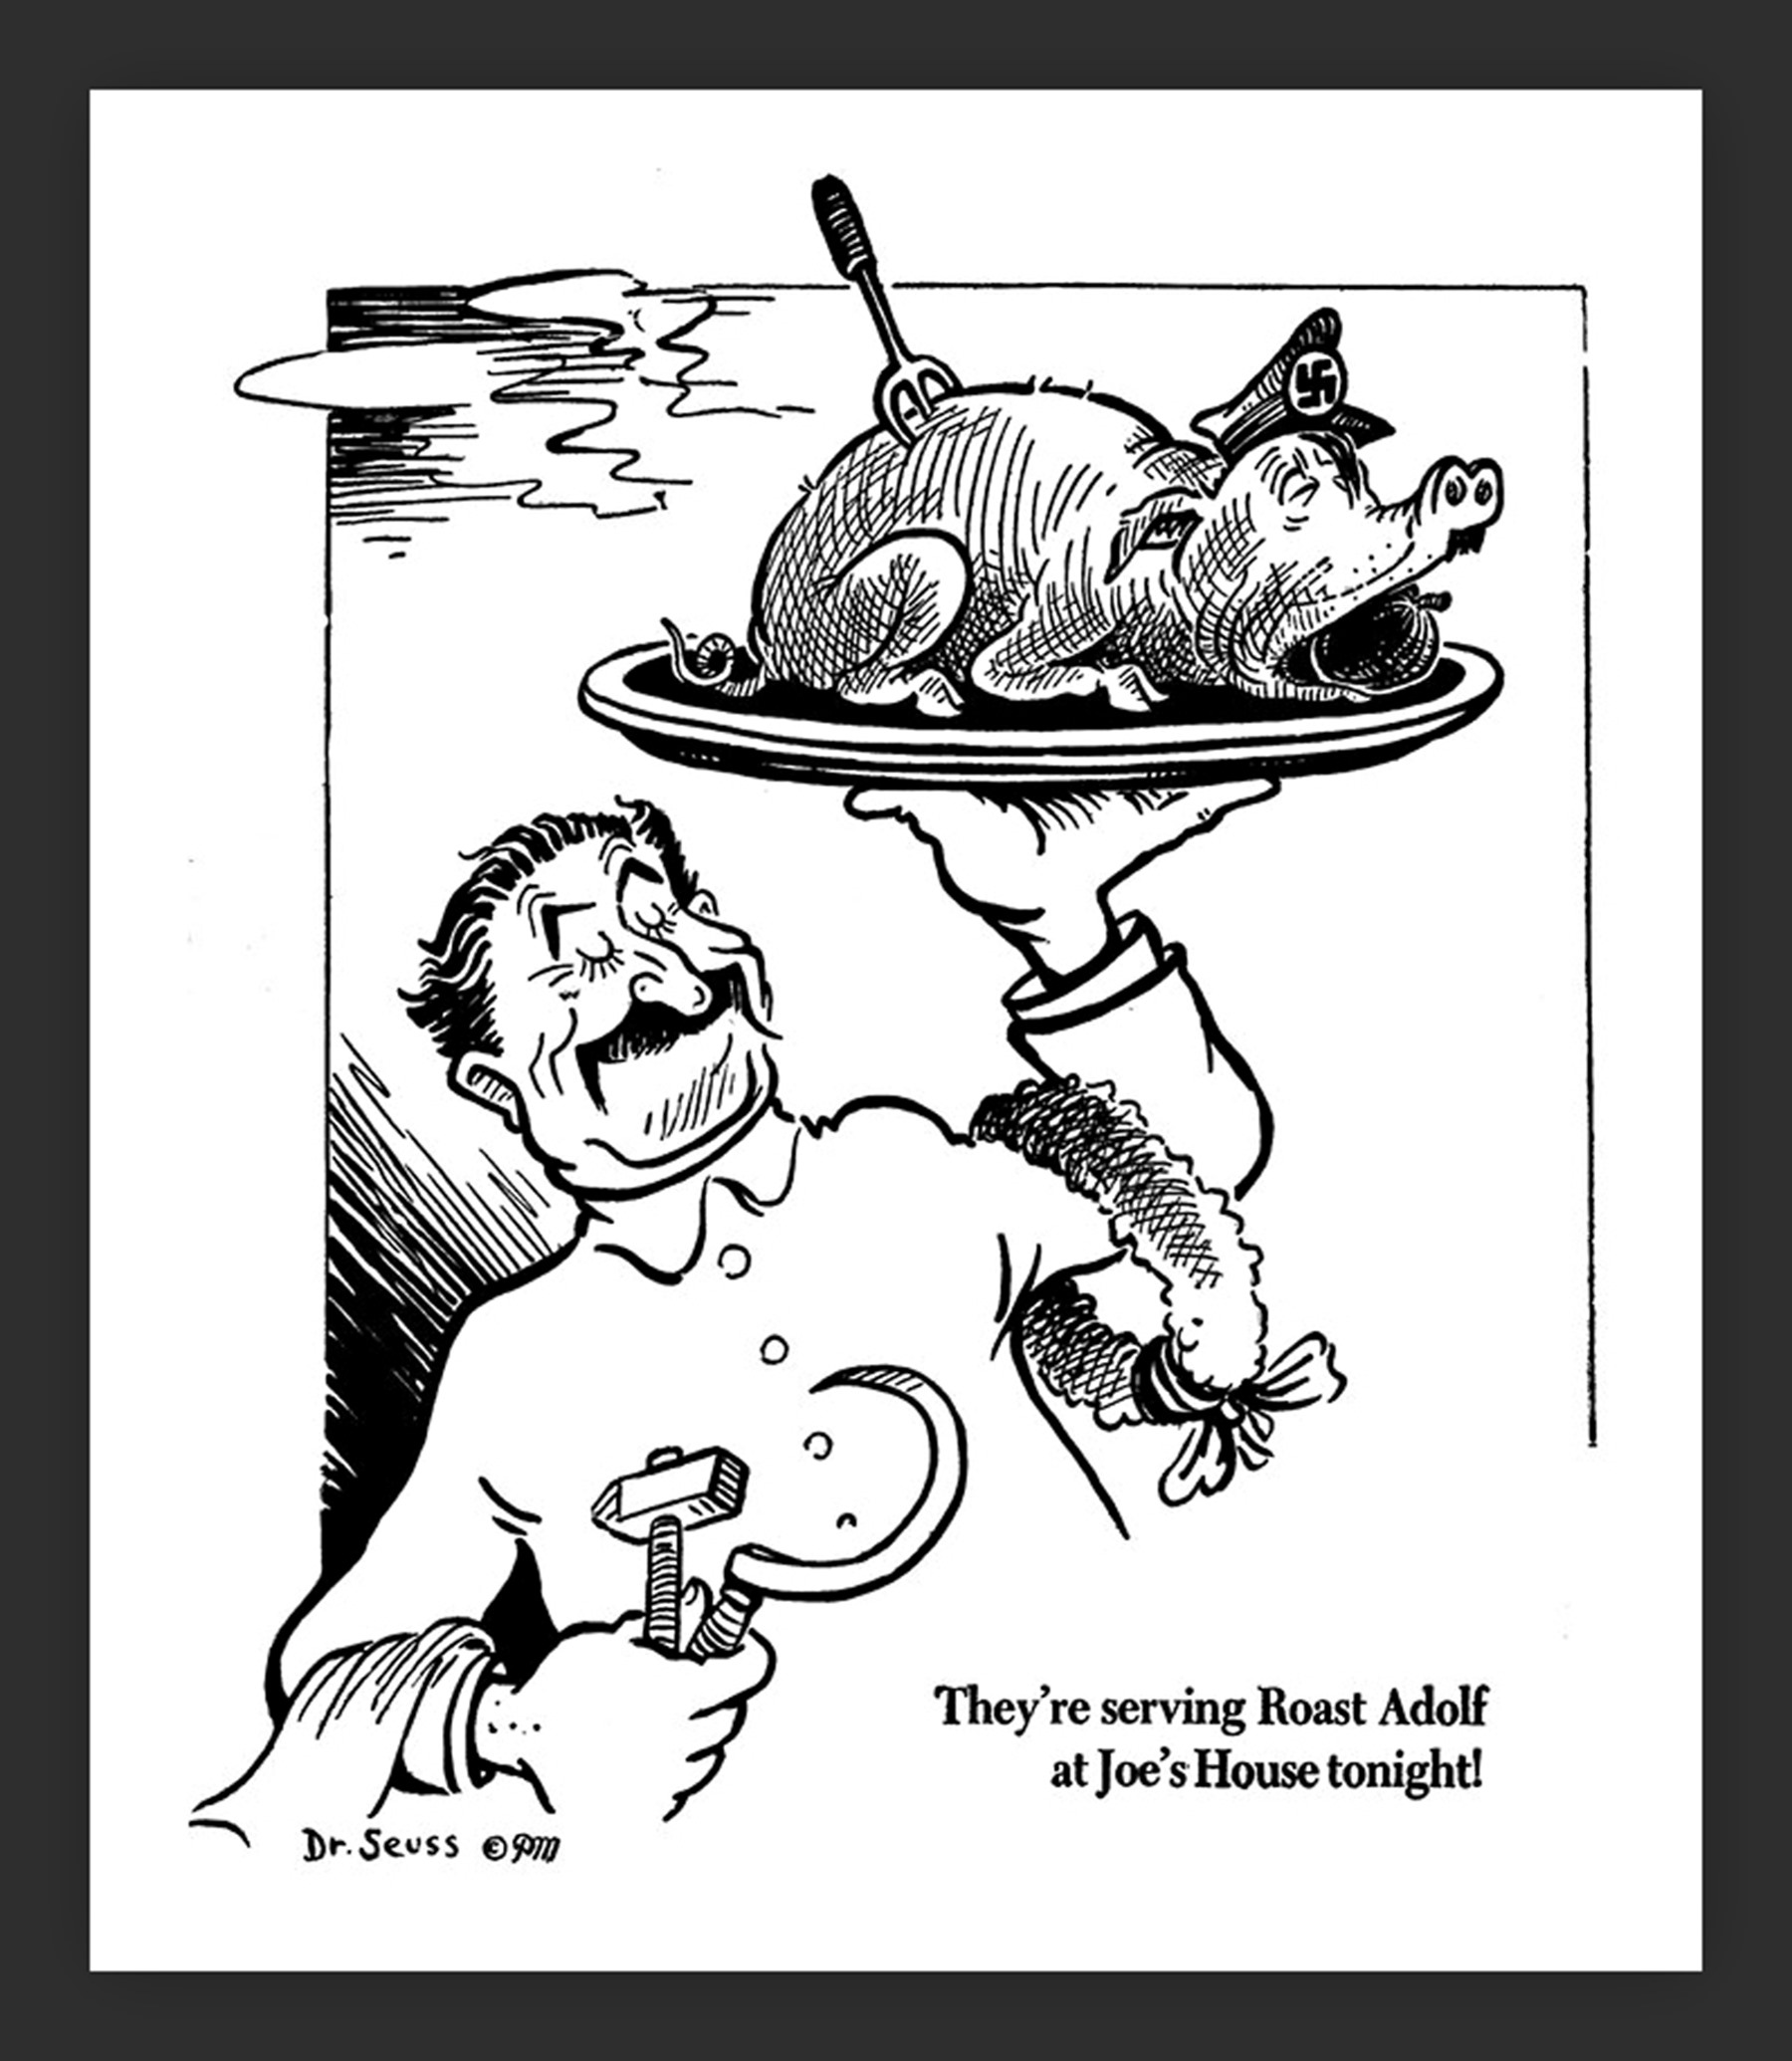 00 Dr Seuss. They're serving Roast Adolf at Joe's House tonight! WW2